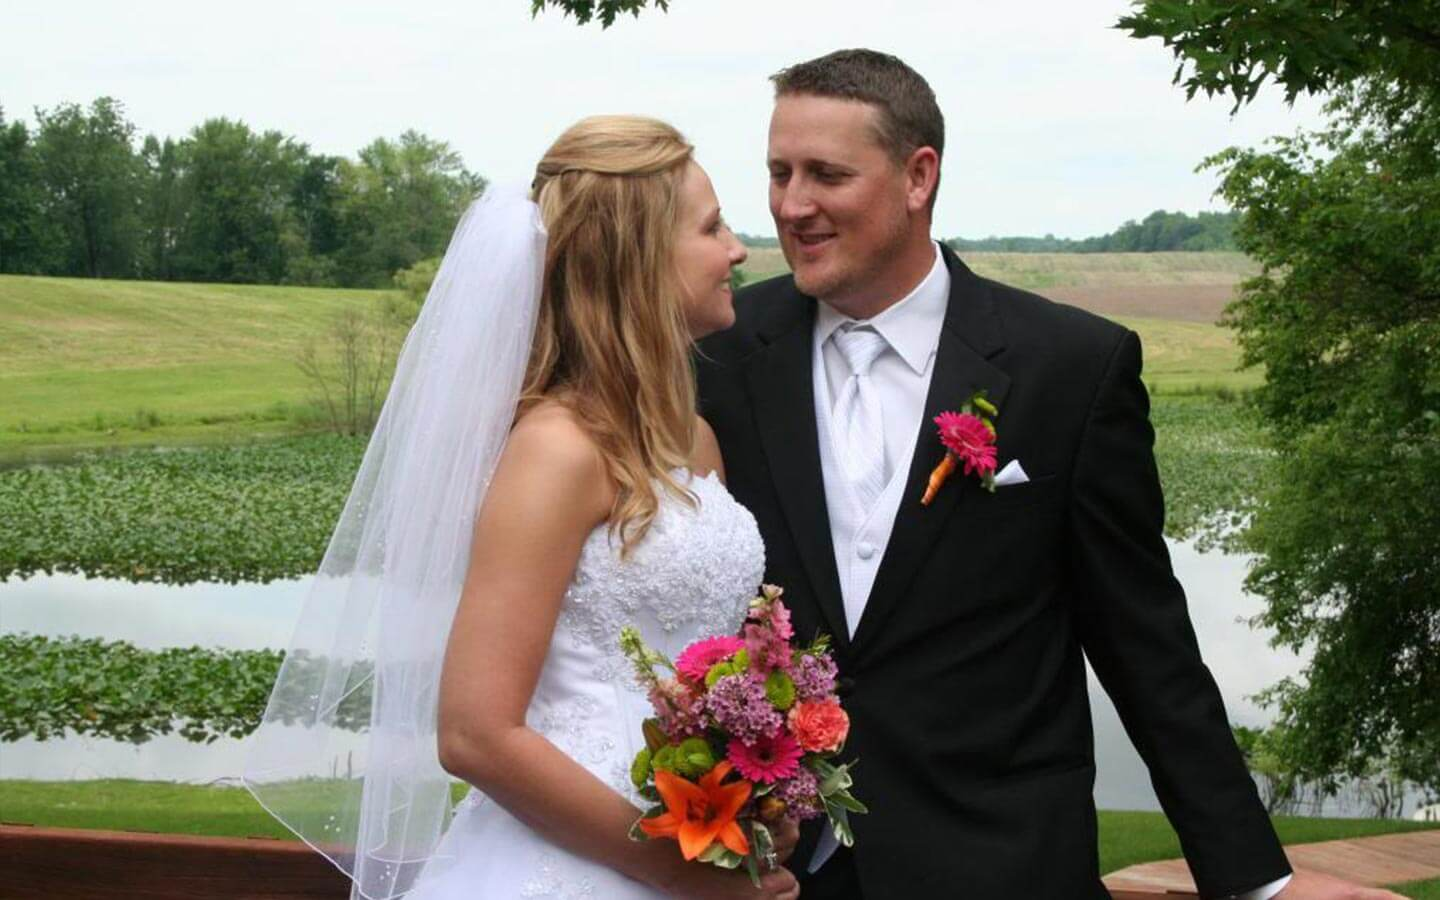 Destination wedding in Michigan, bride and groom looking at each other with smiles